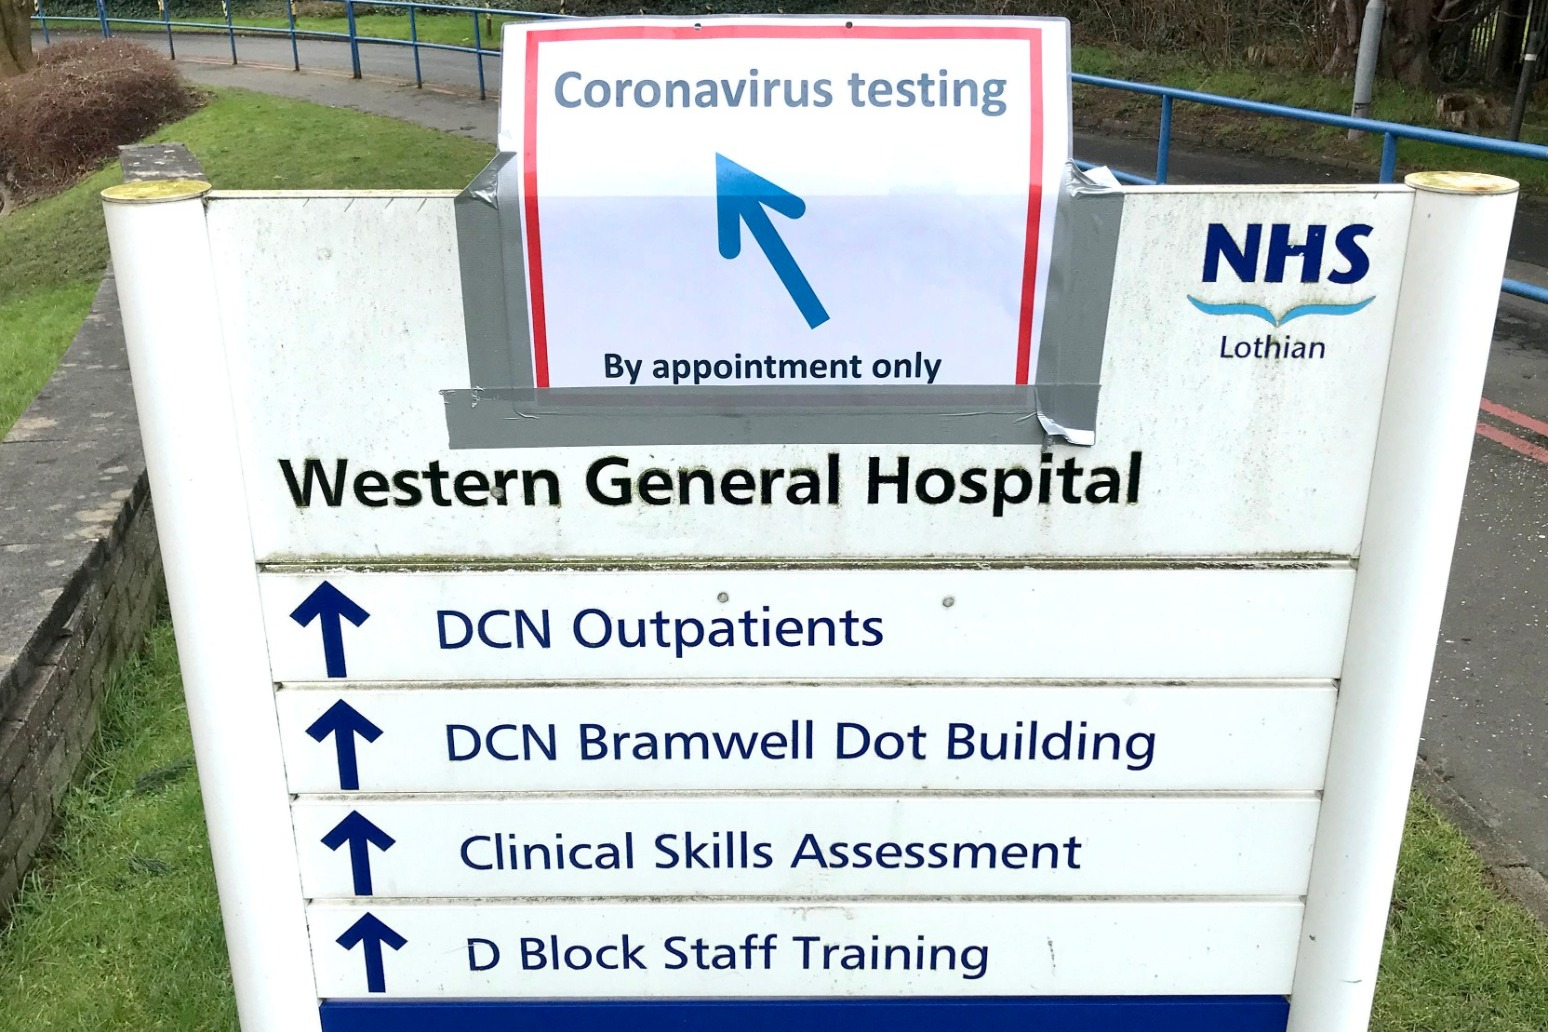 Scotland is preparing for a significant outbreak of coronavirus